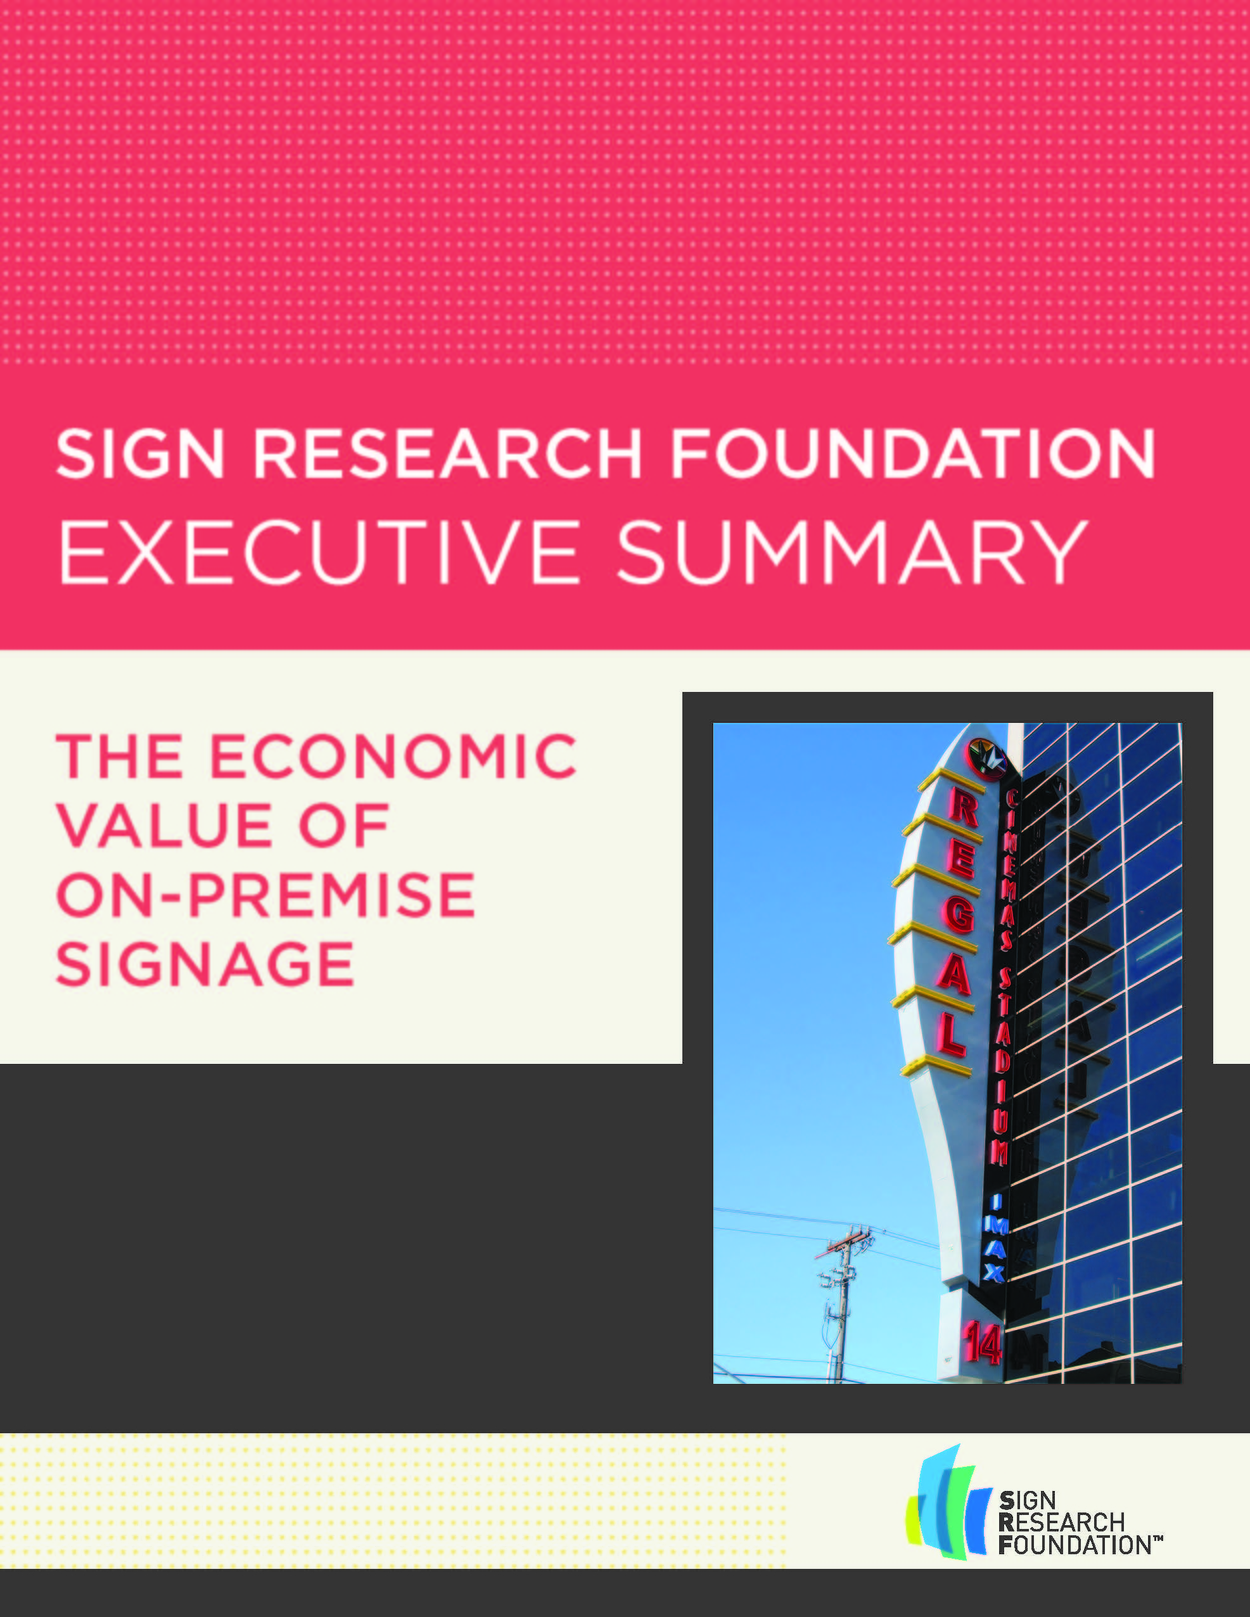 Sign Research Foundation Executive Summary, The Economic Value of On-Premise Signage